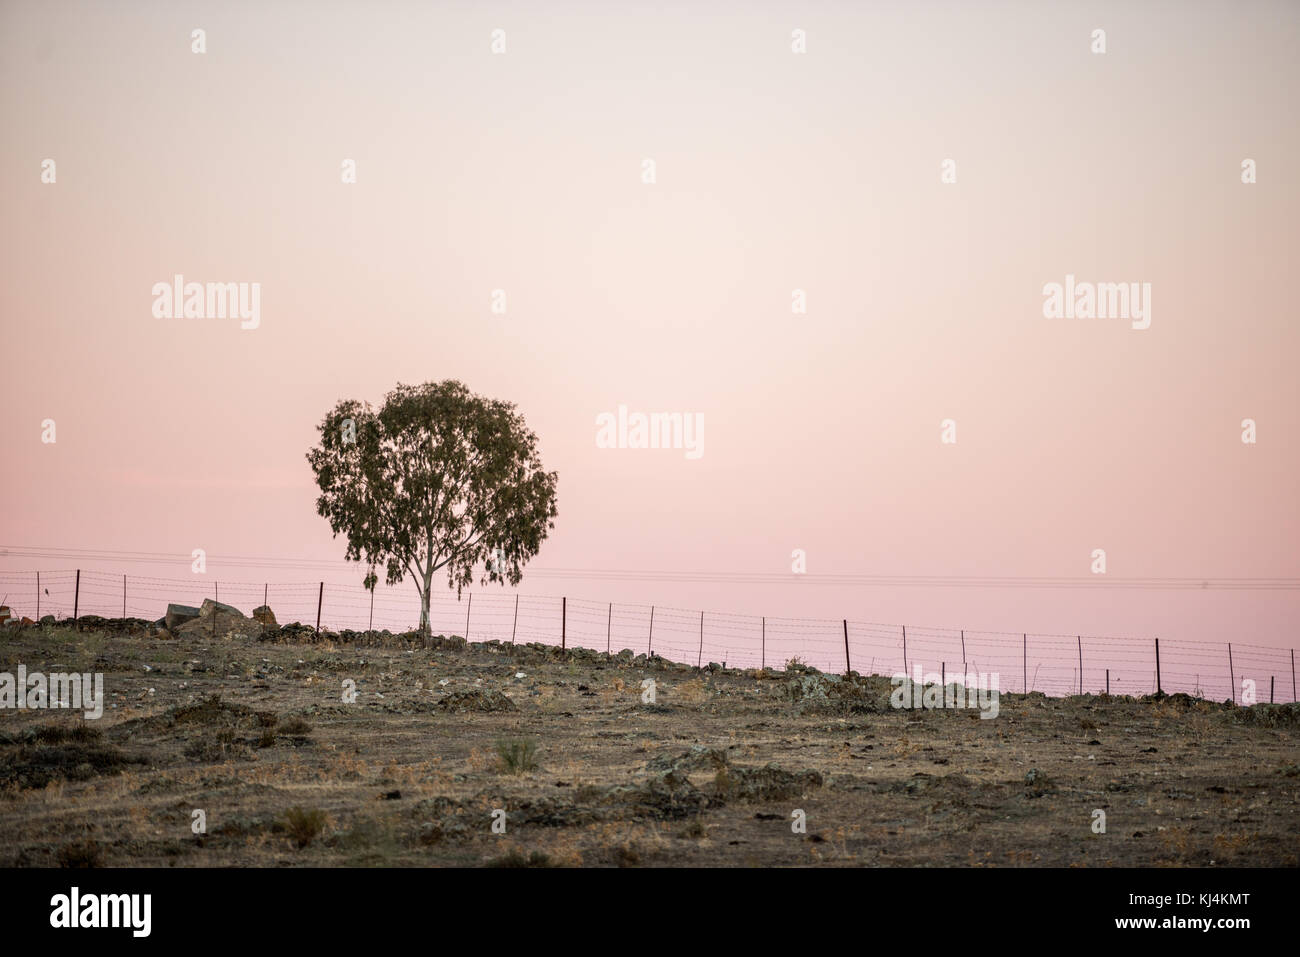 A lonely tree at the top of a hill in the steppe on a sunset background. Cáceres, Extremadura, Spain - Stock Image